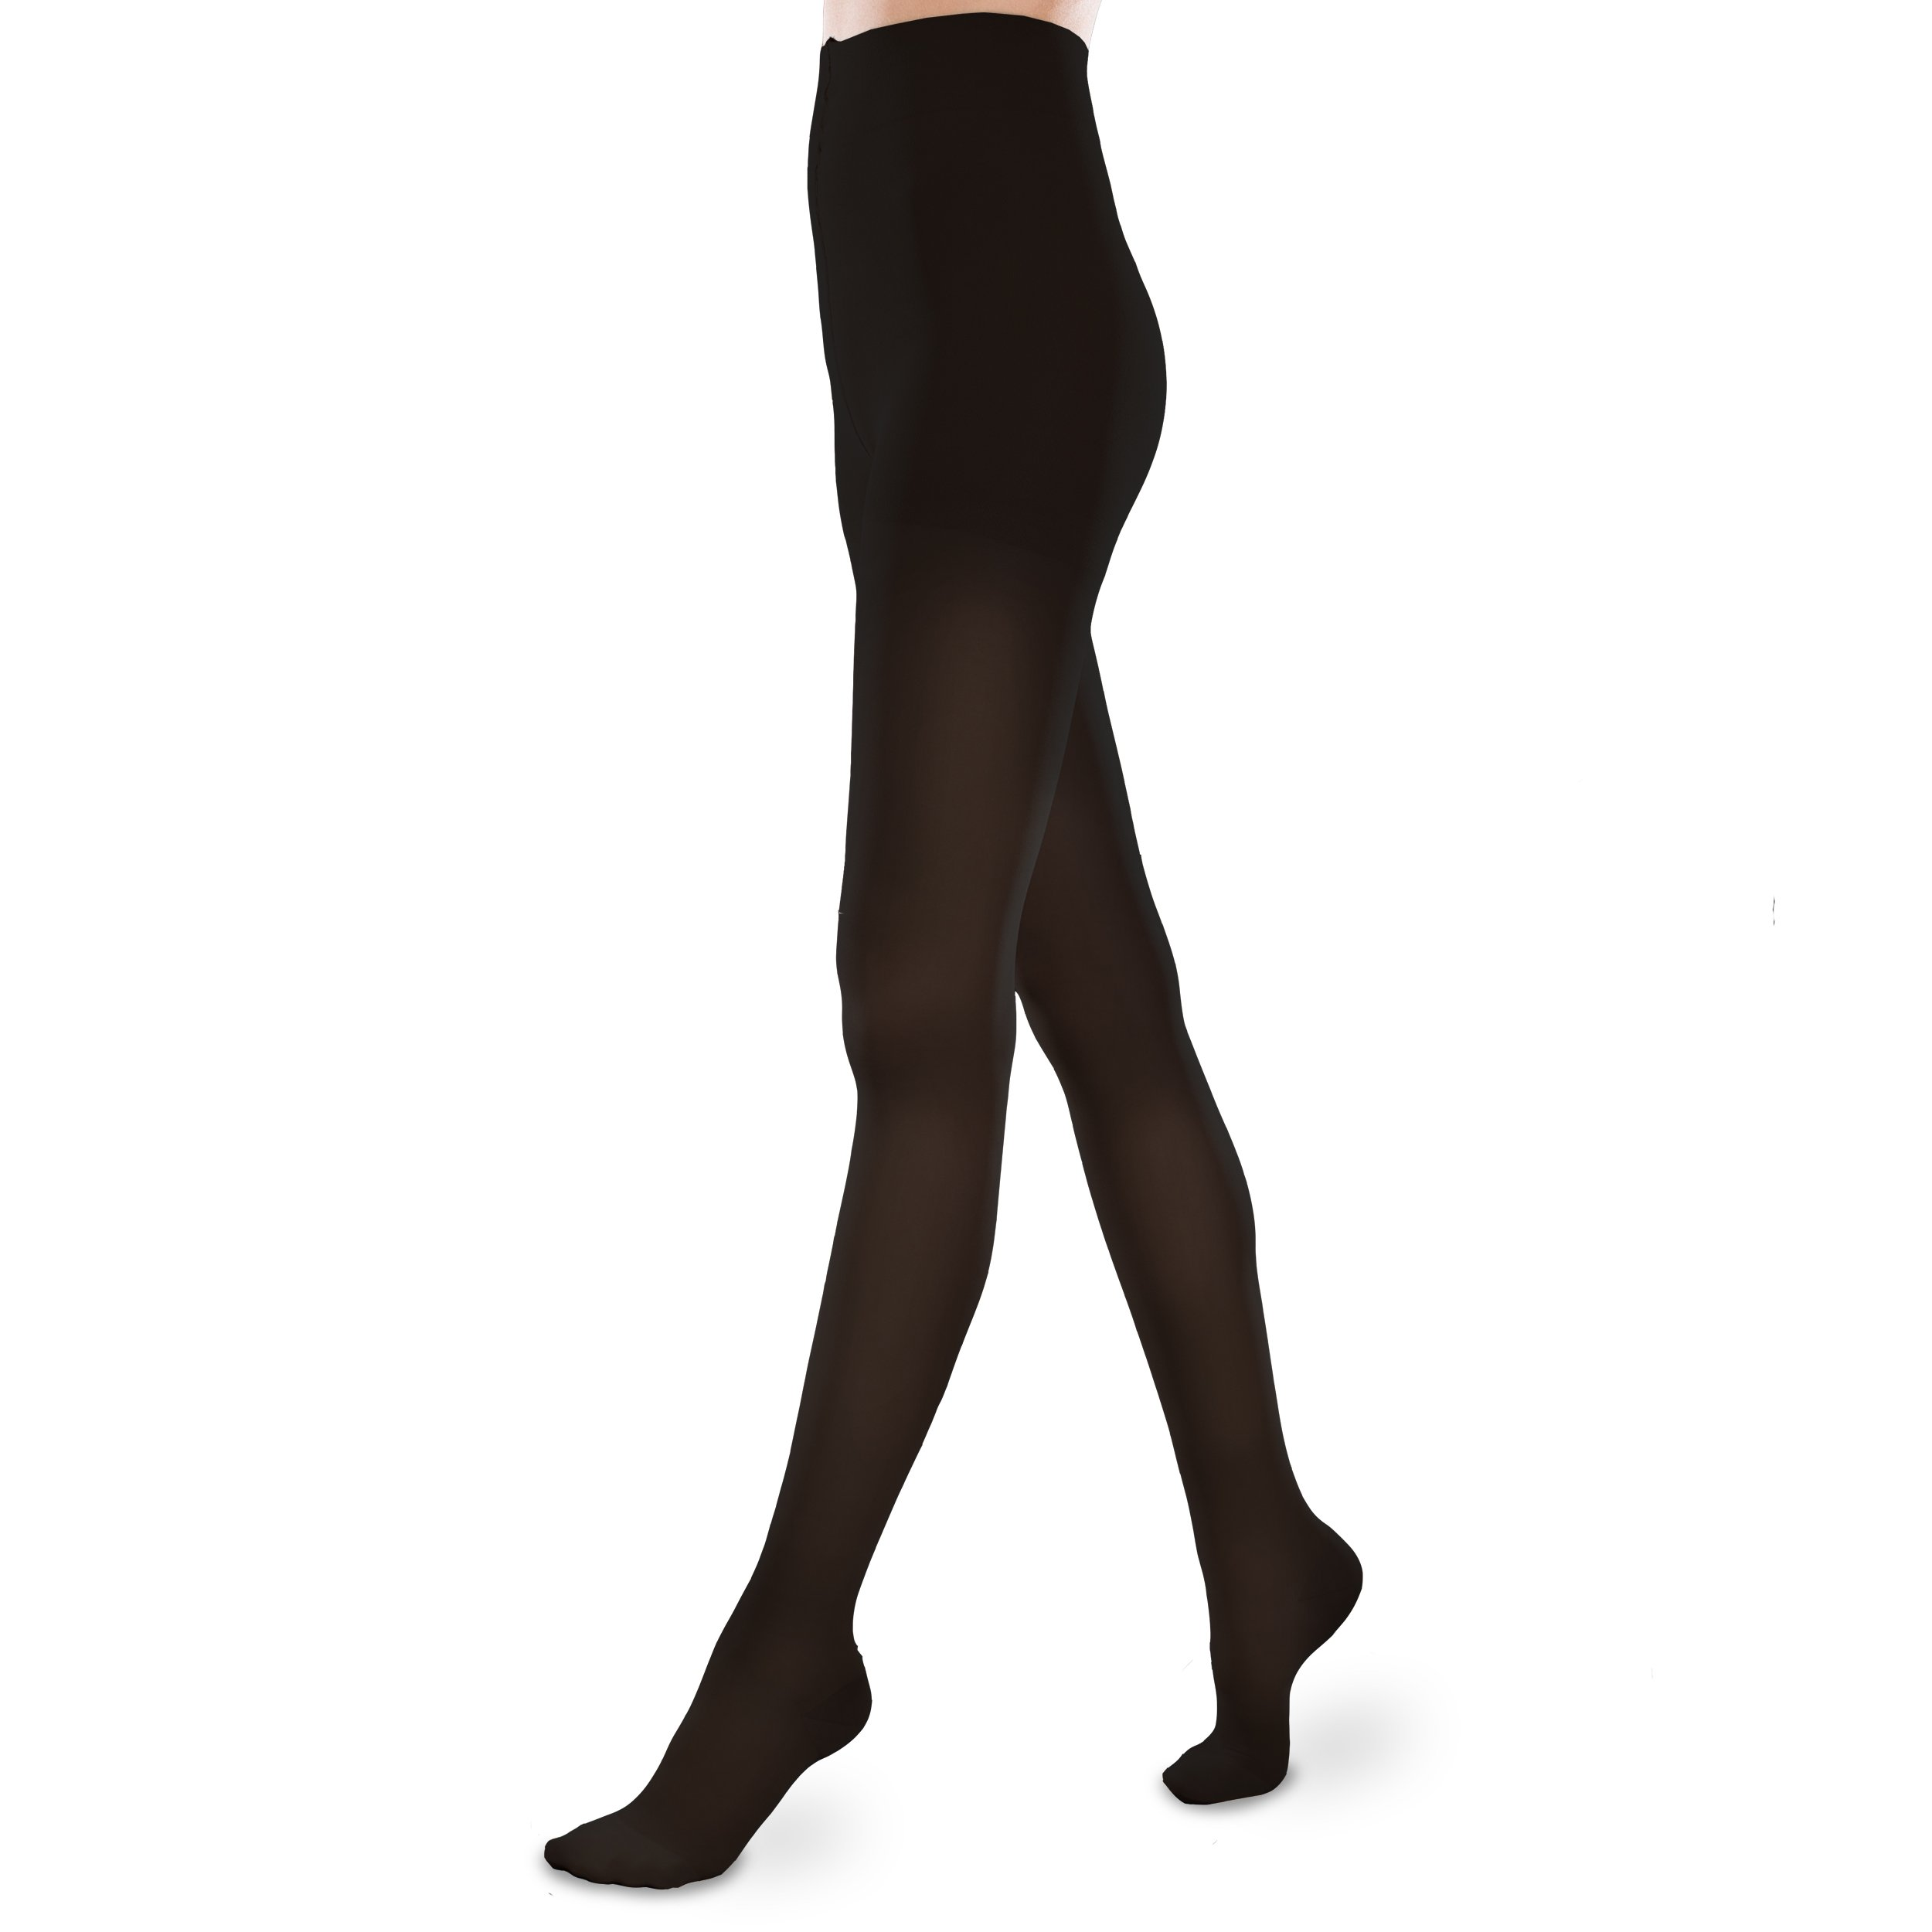 Sheer Ease Women's Support Pantyhose - 30-40mmHg Firm Compression Stockings (Black, Large Long)